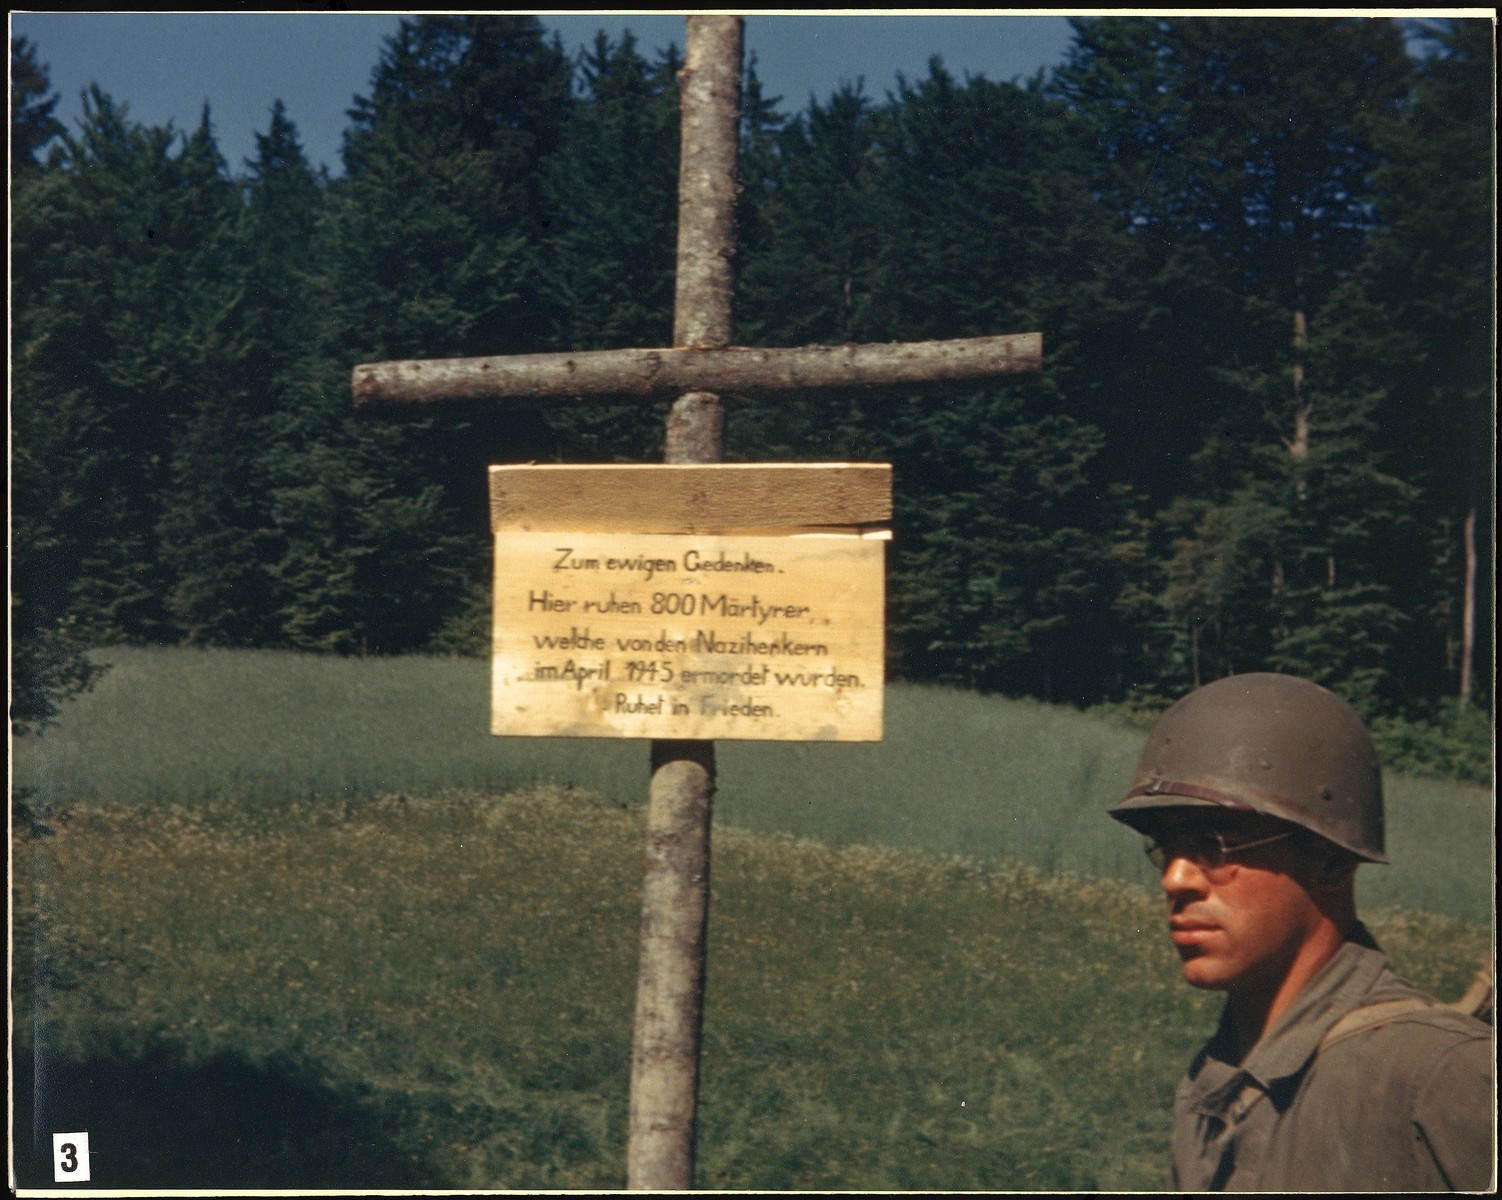 """An American soldier stands next to a sign erected by the U.S. Army to mark the site of the Nammering atrocity.  It reads: """"In eternal memory.  Here lie 800 martyrs who were murdered by Nazi executioners in April 1945.  Rest in peace."""""""